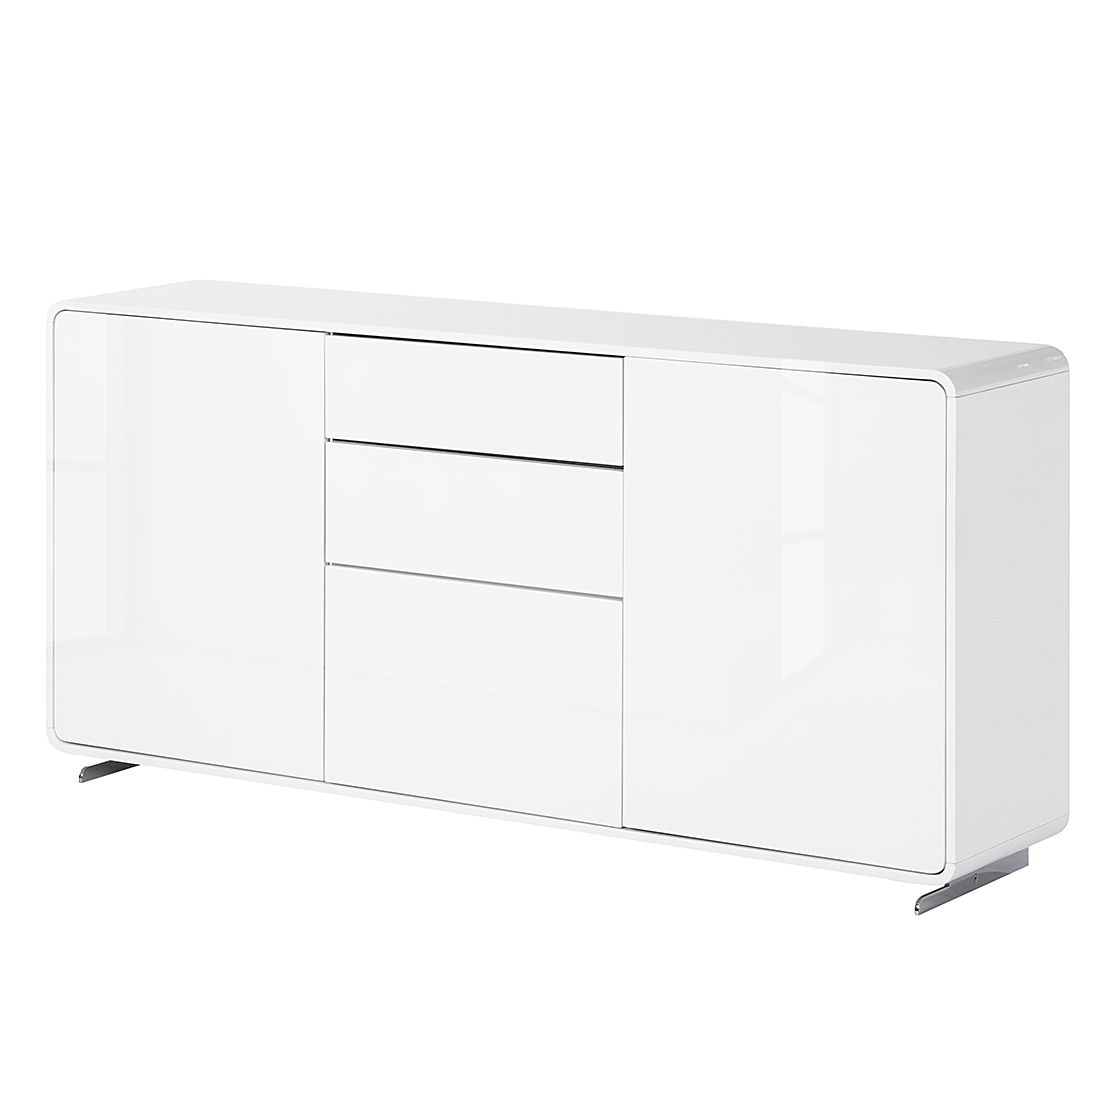 sideboard cuuba curve s18 4 led hochglanz wei jahnke. Black Bedroom Furniture Sets. Home Design Ideas